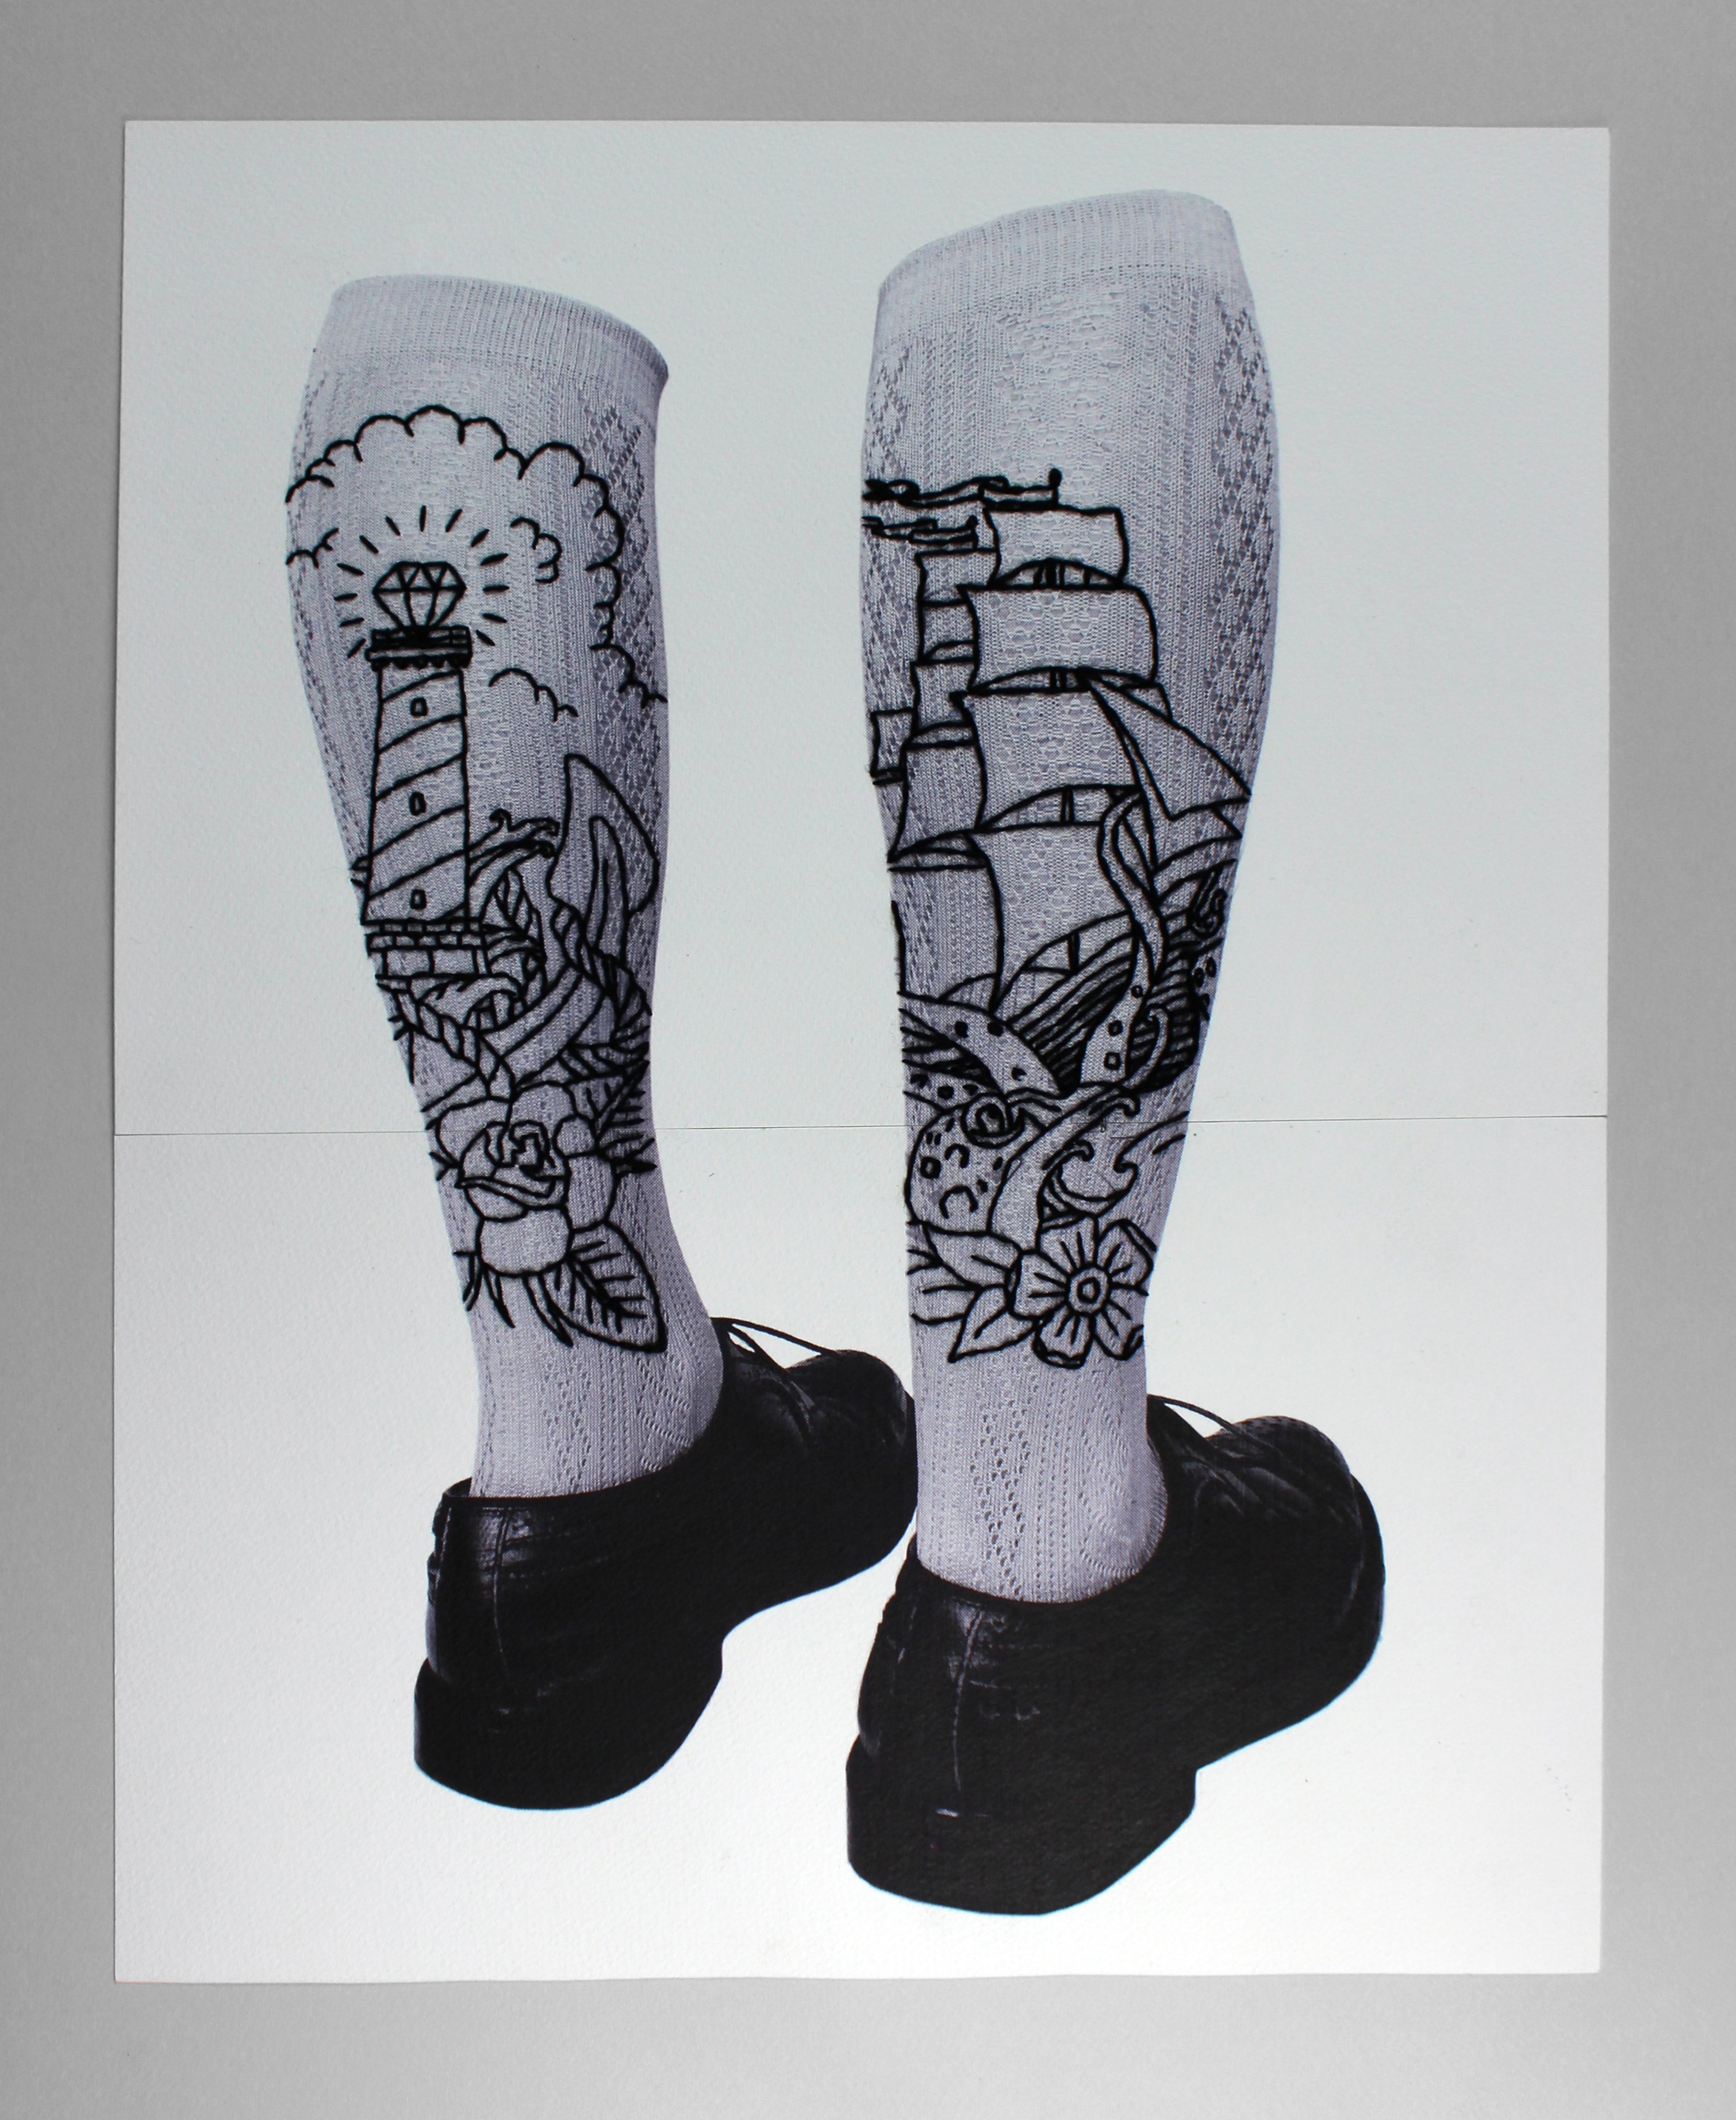 Tattooed socks, embroidery on paper, paolo fiorentini